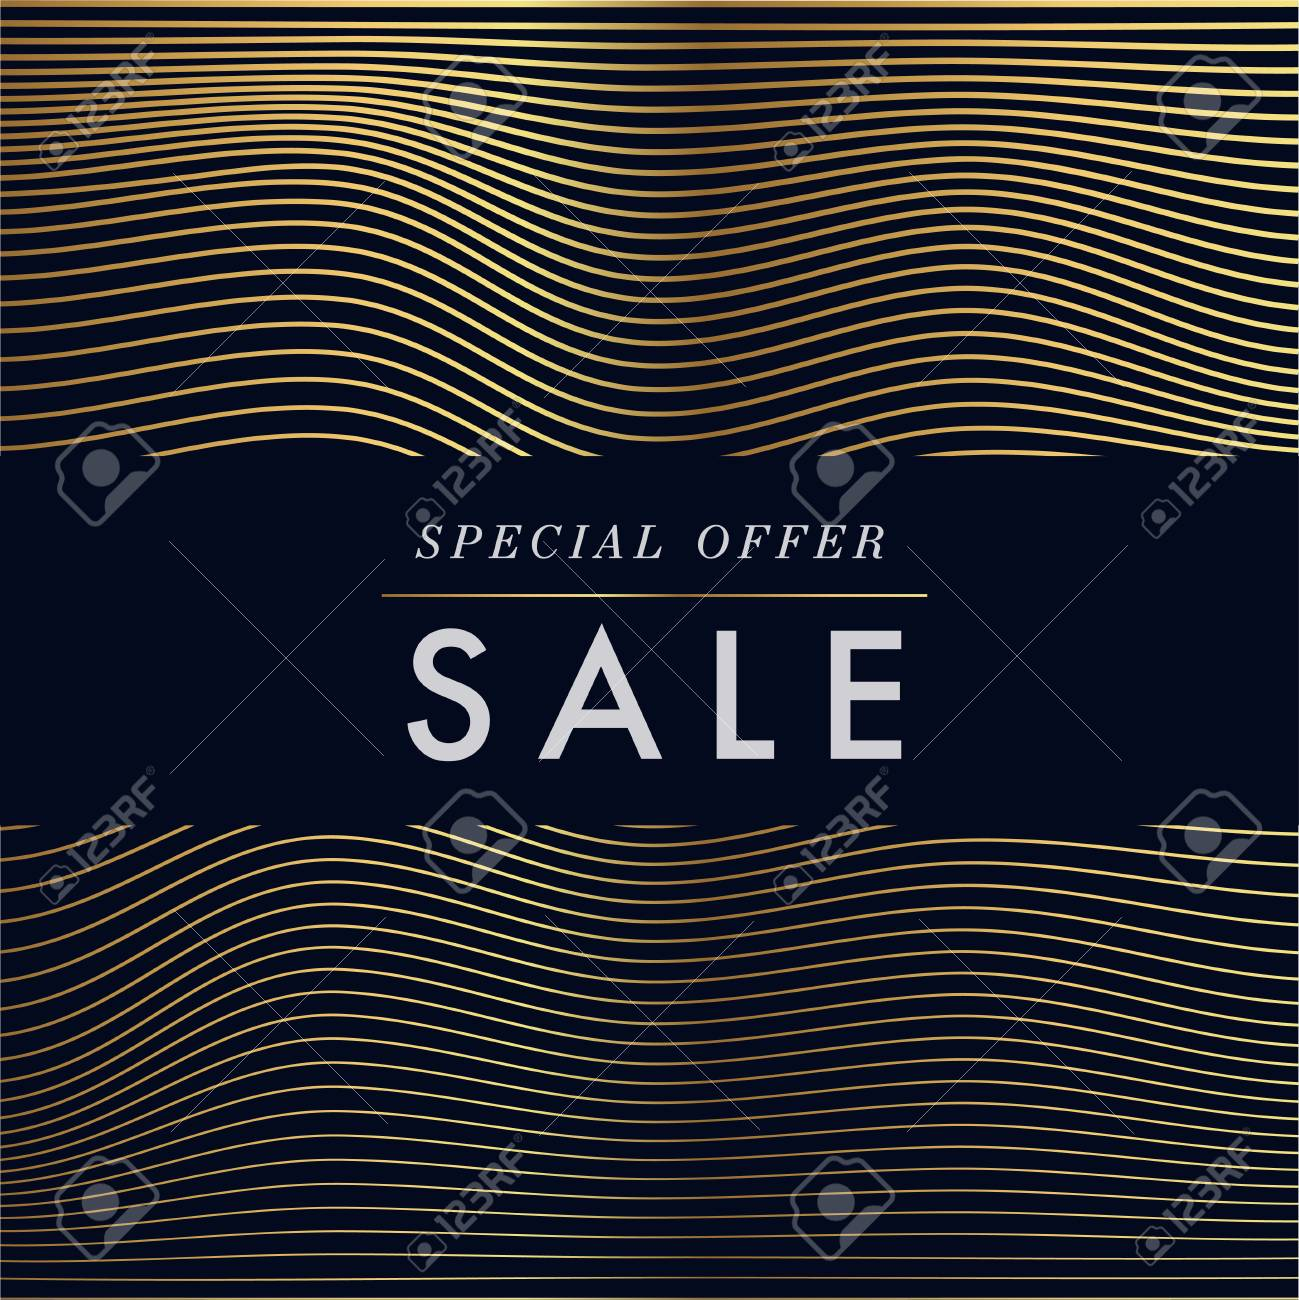 Special offer sale with gold geometric shape design layout for special offer sale with gold geometric shape design layout for banners wallpaper flyers stopboris Choice Image